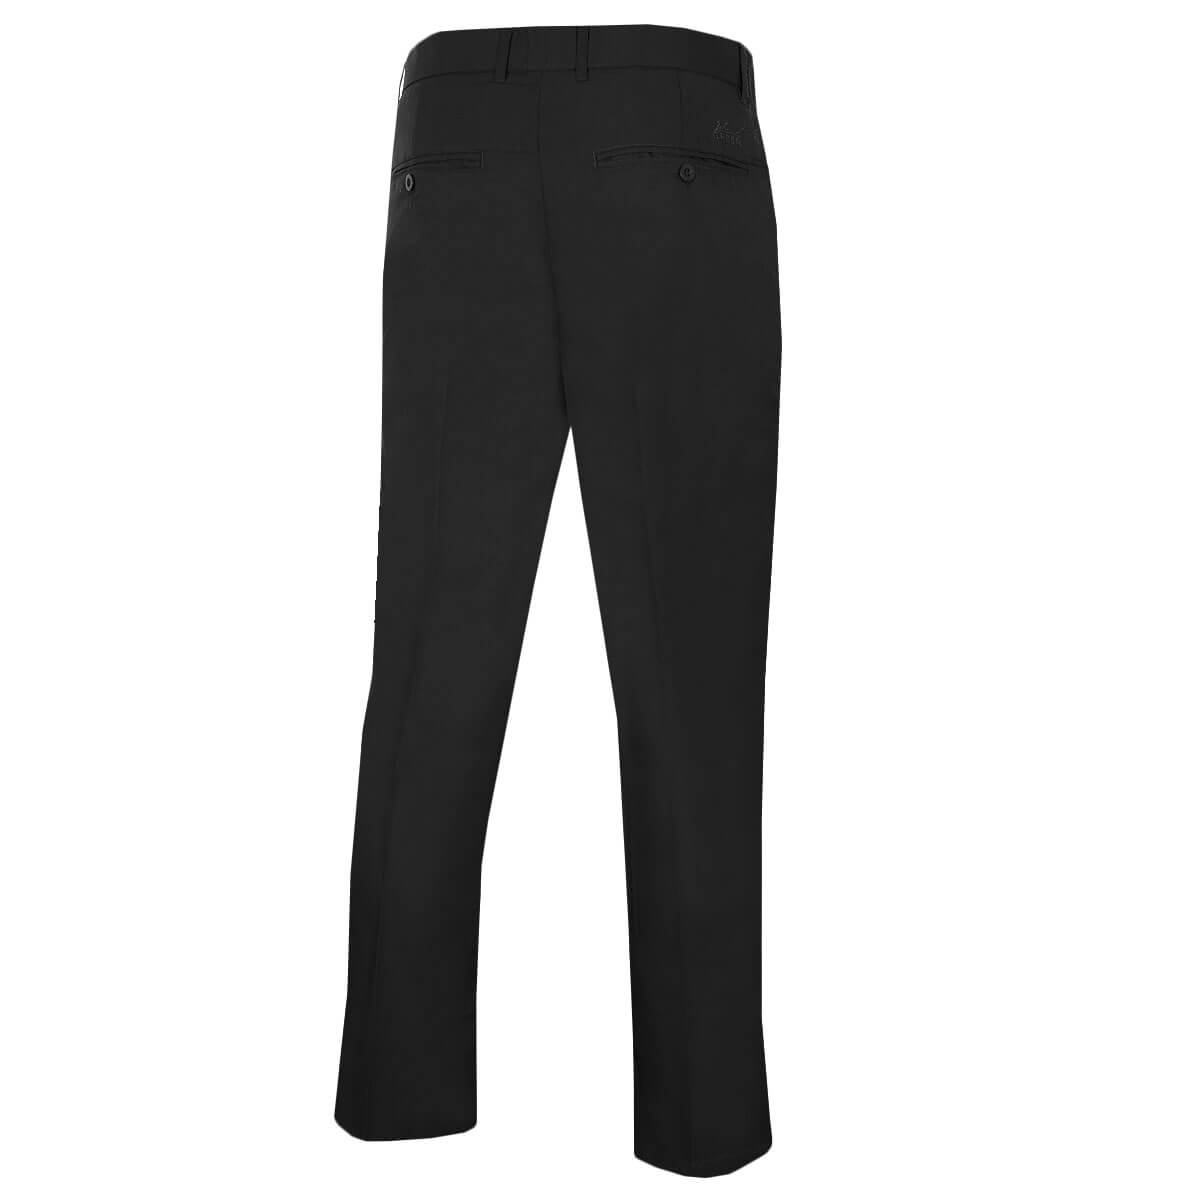 Island-Green-Breathable-Tapered-Slim-Fit-Mens-Golf-Trousers-47-OFF-RRP thumbnail 3